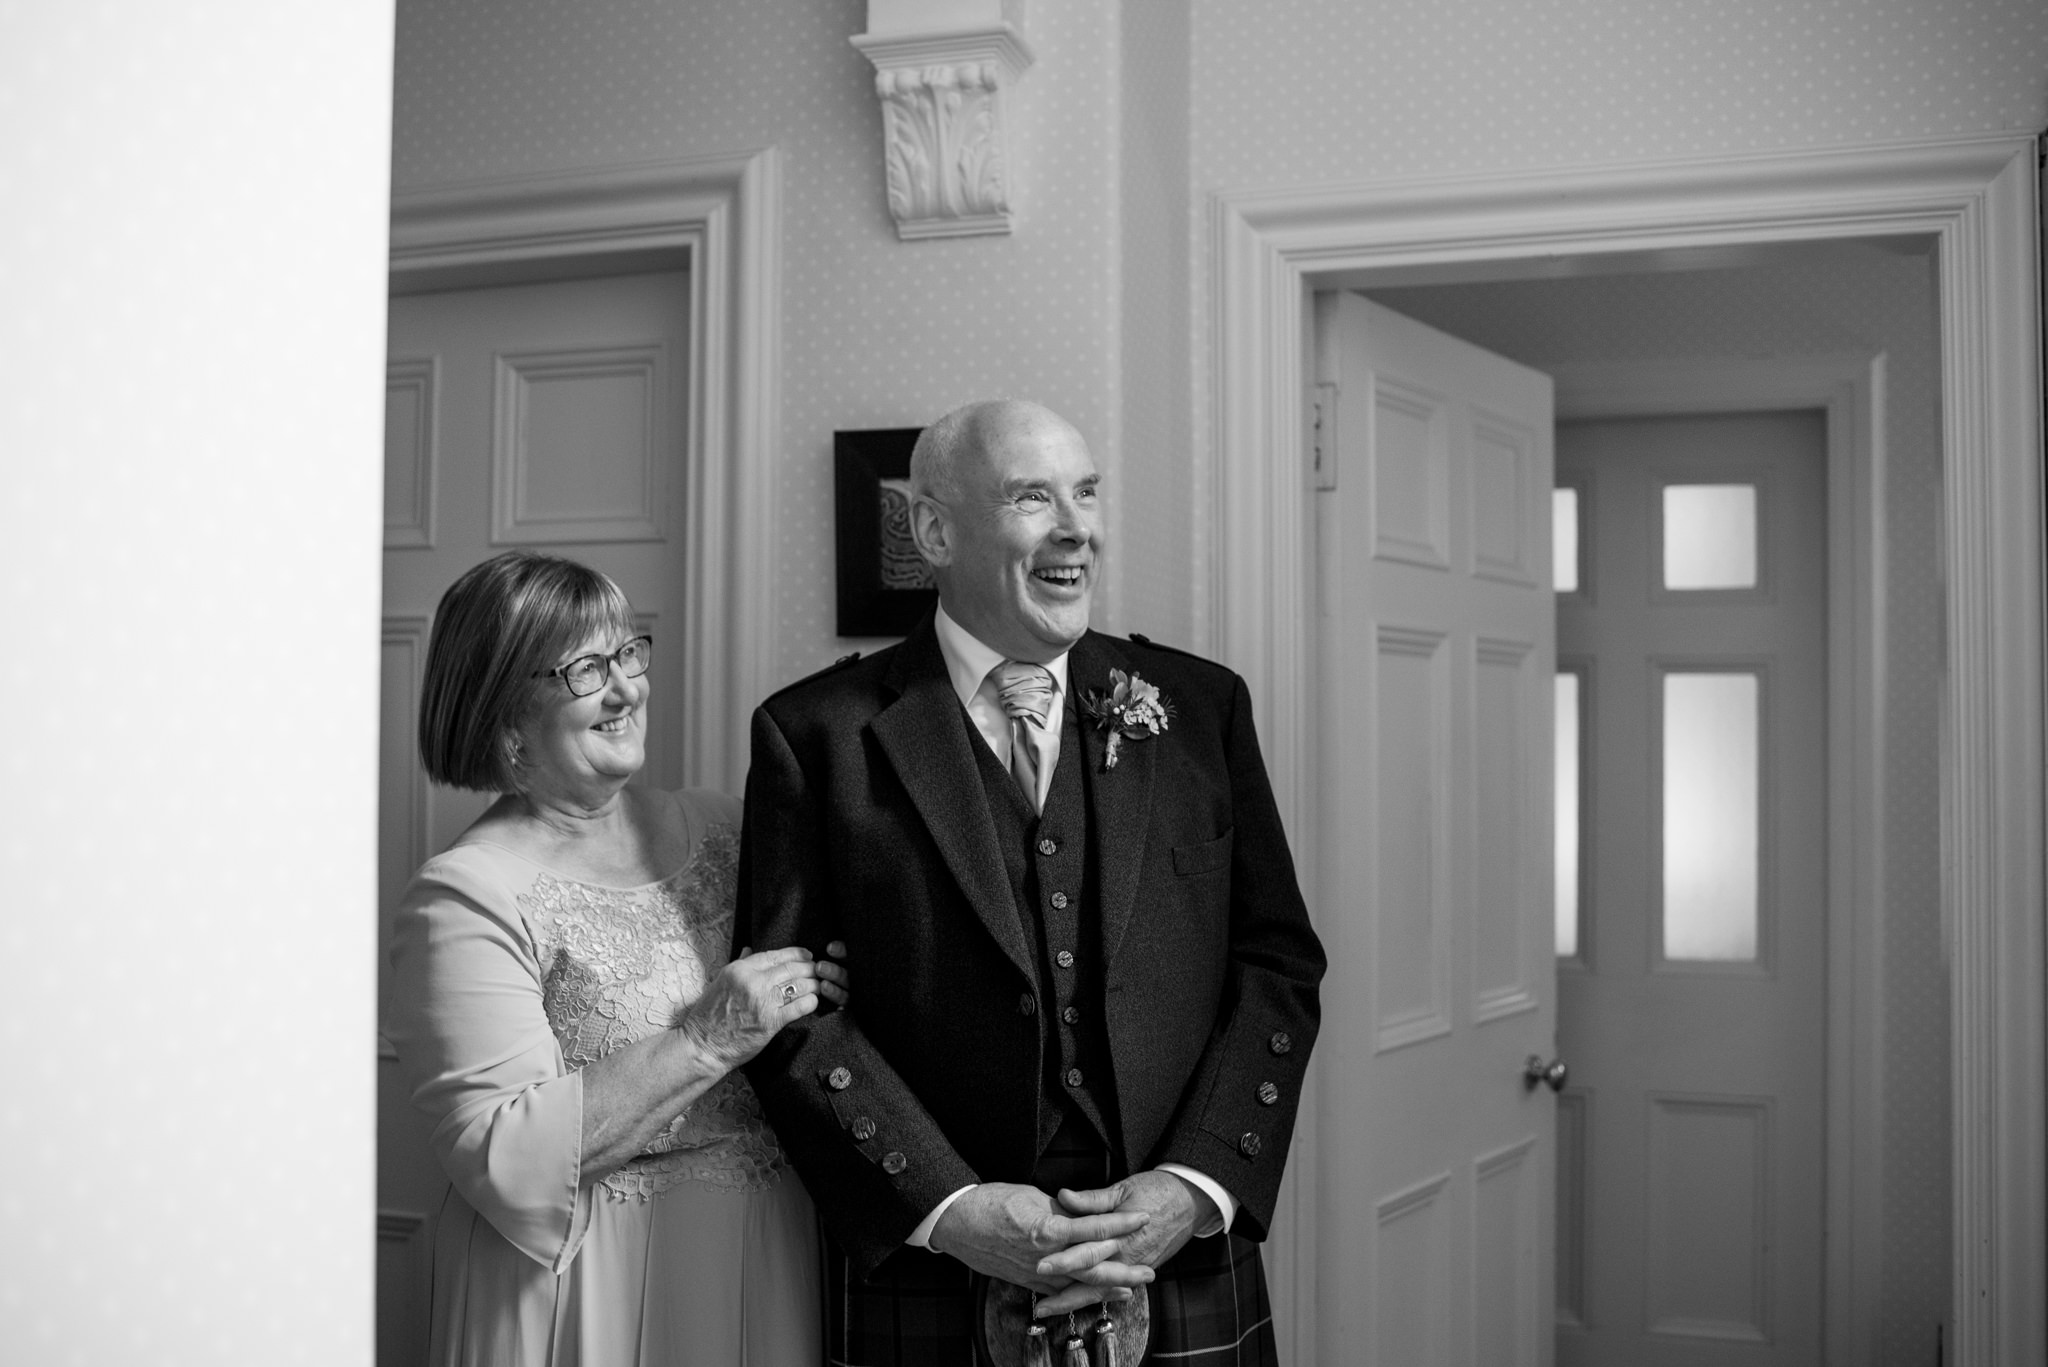 Hollie and Tom's wedding at Gean House © Julie Broadfoot // Juliebee - www.photographybyjuliebee.co.uk